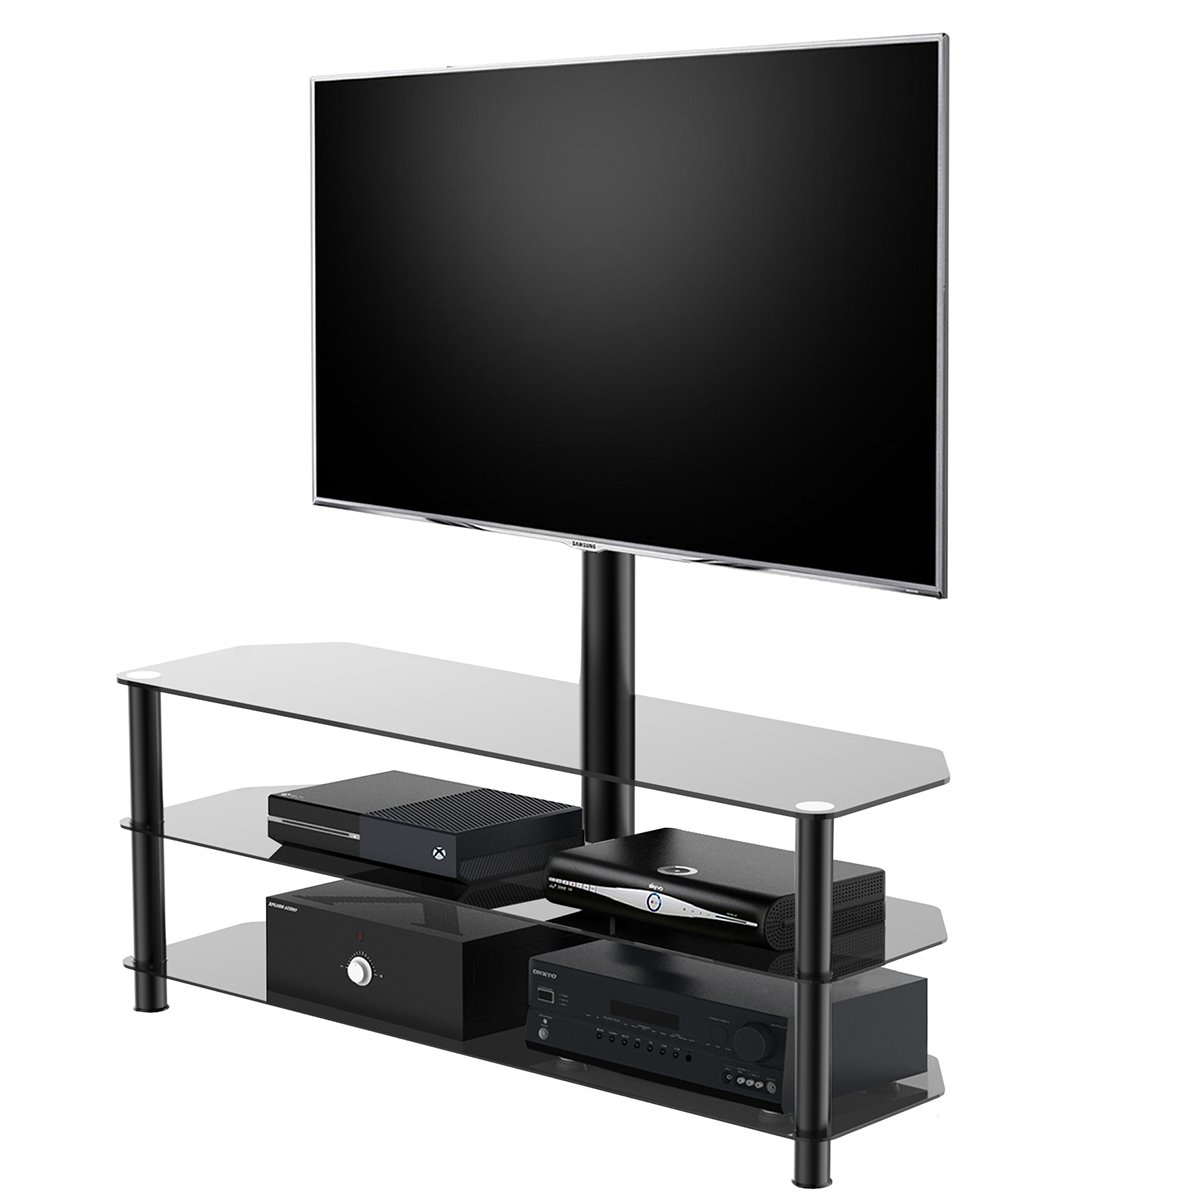 Top 10 Best Tv Stands With Mount For 60 Inch Screens 2018 2019 On